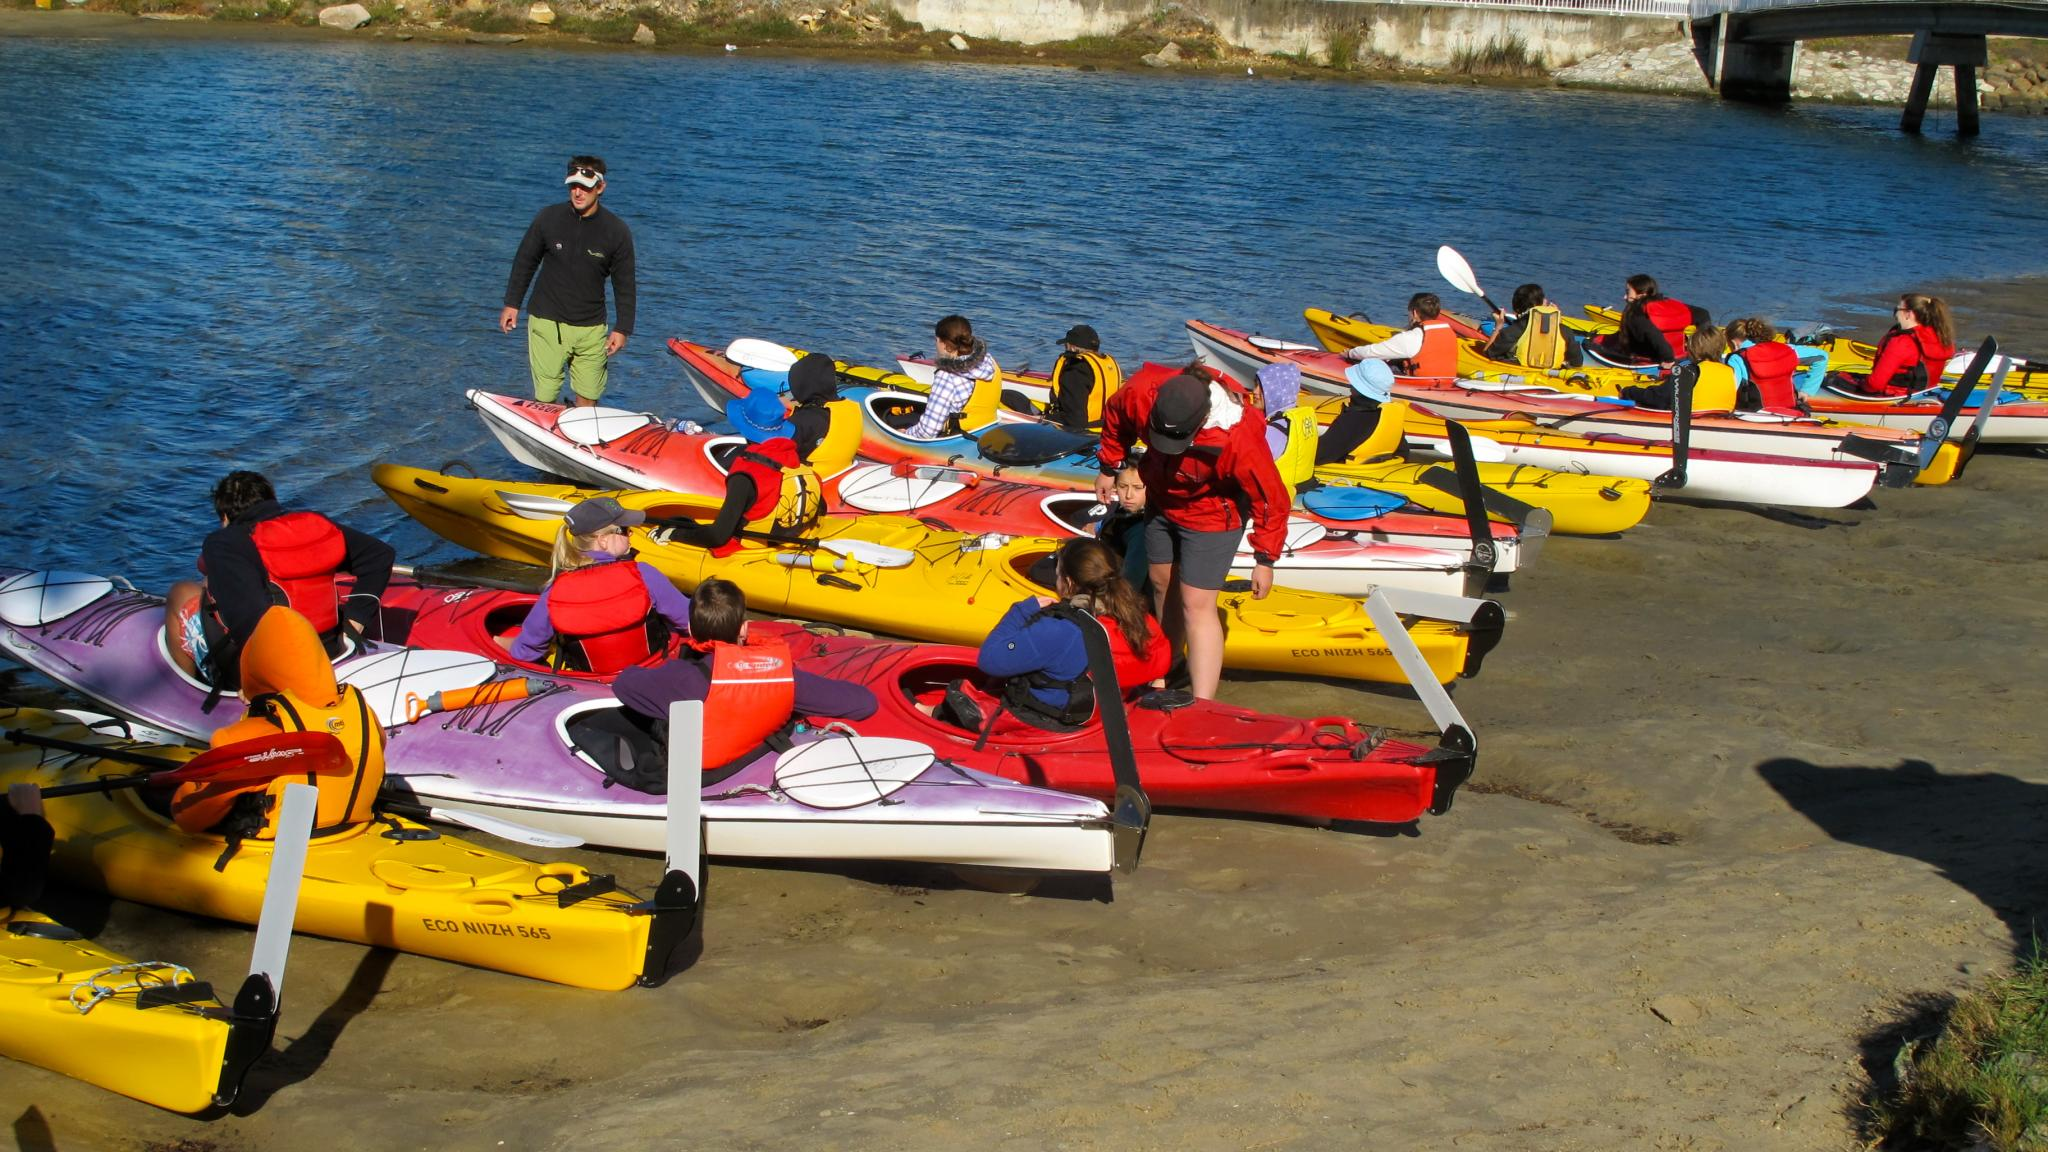 Roaring 40ºs Kayaking - Group kayaking activity on the beach, Kingston, Hobart, Tasmania